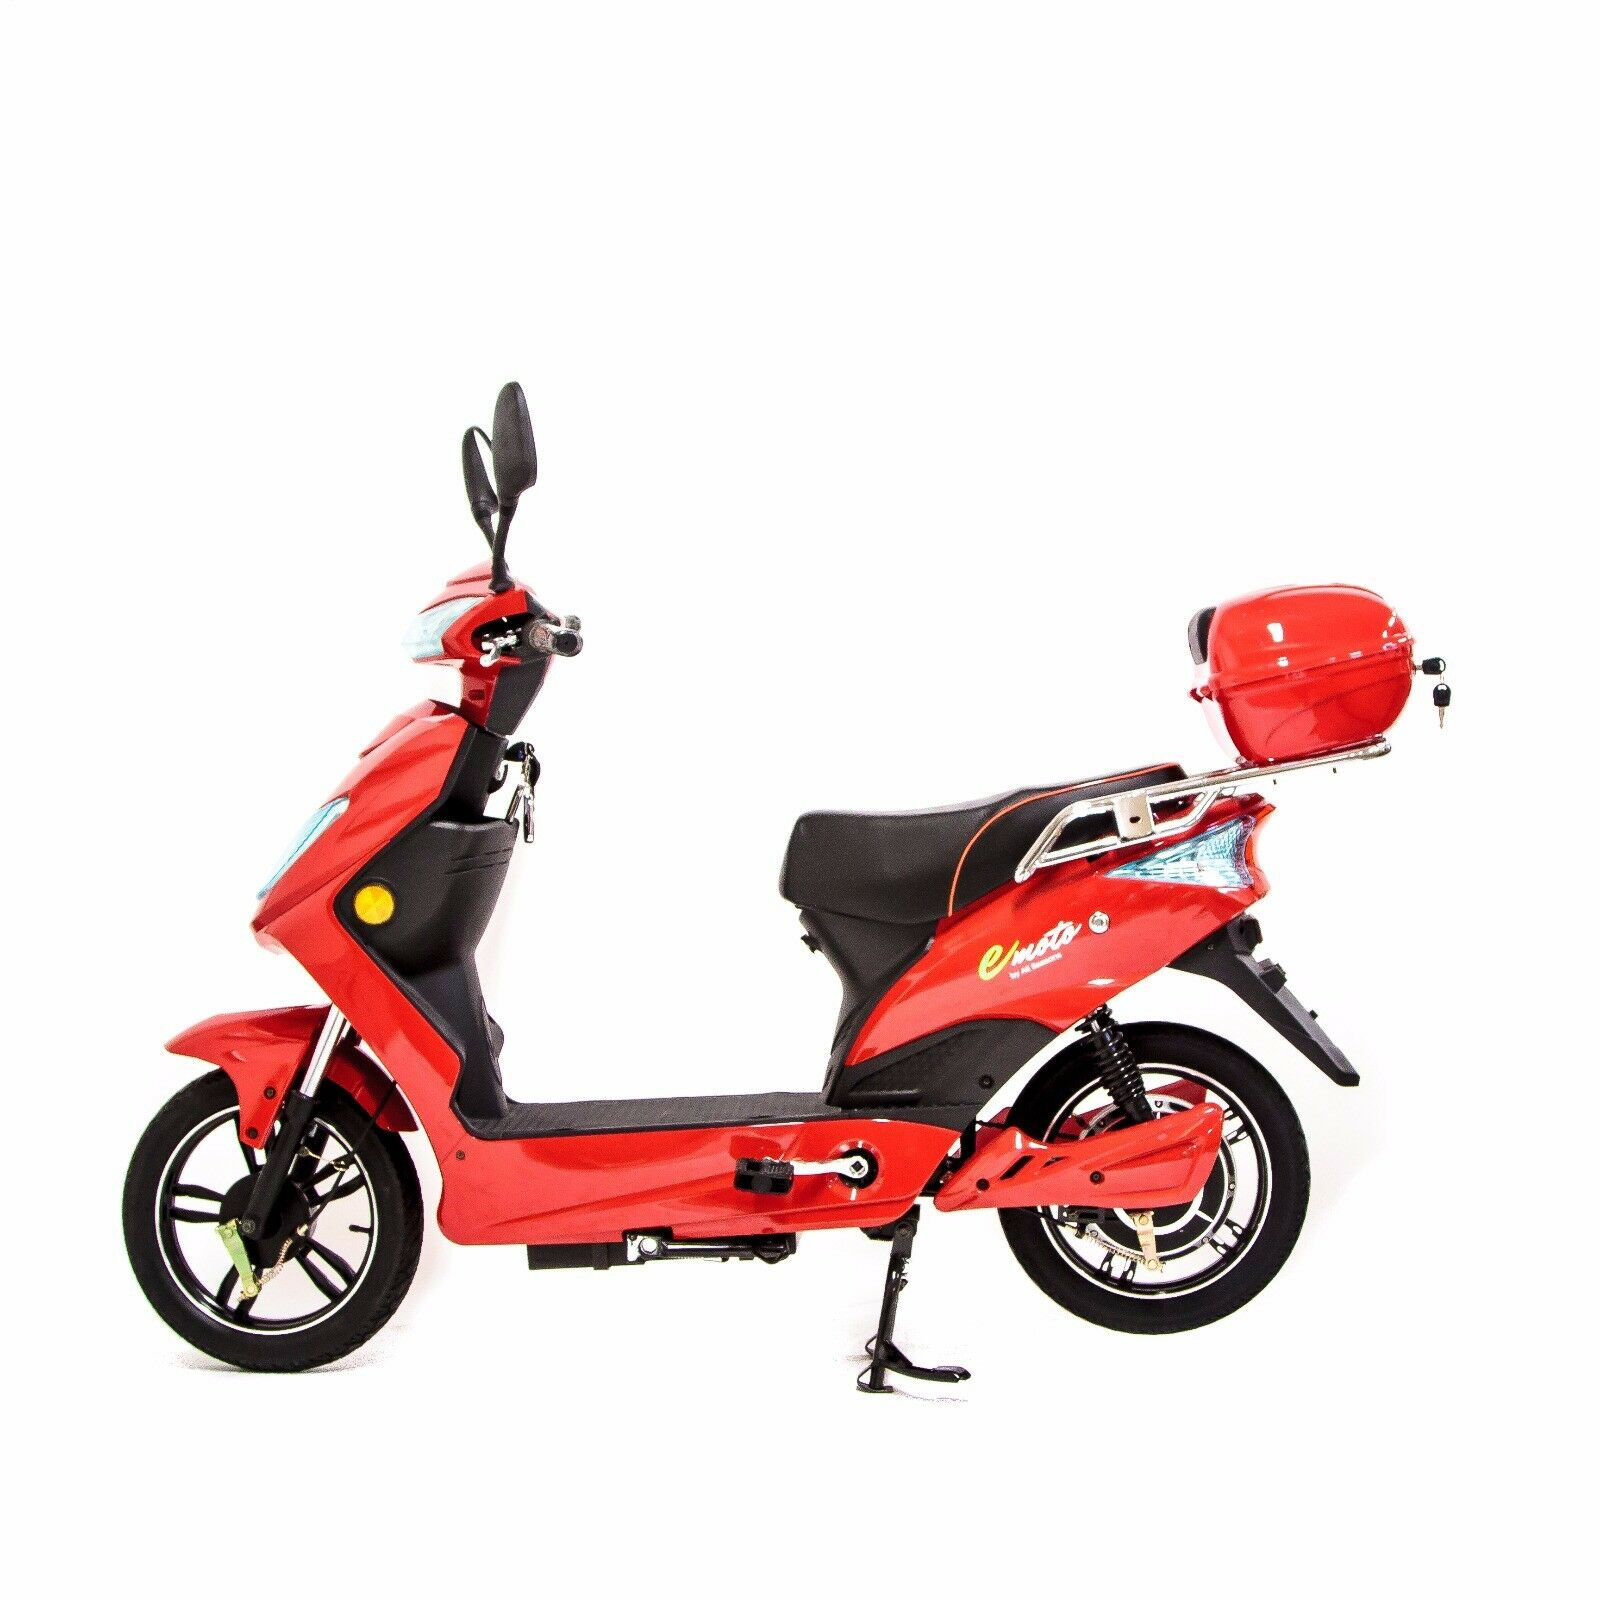 Electric Bike Moped Scooter with 48V Lithium Battery  250W Road Legal 2019 Model